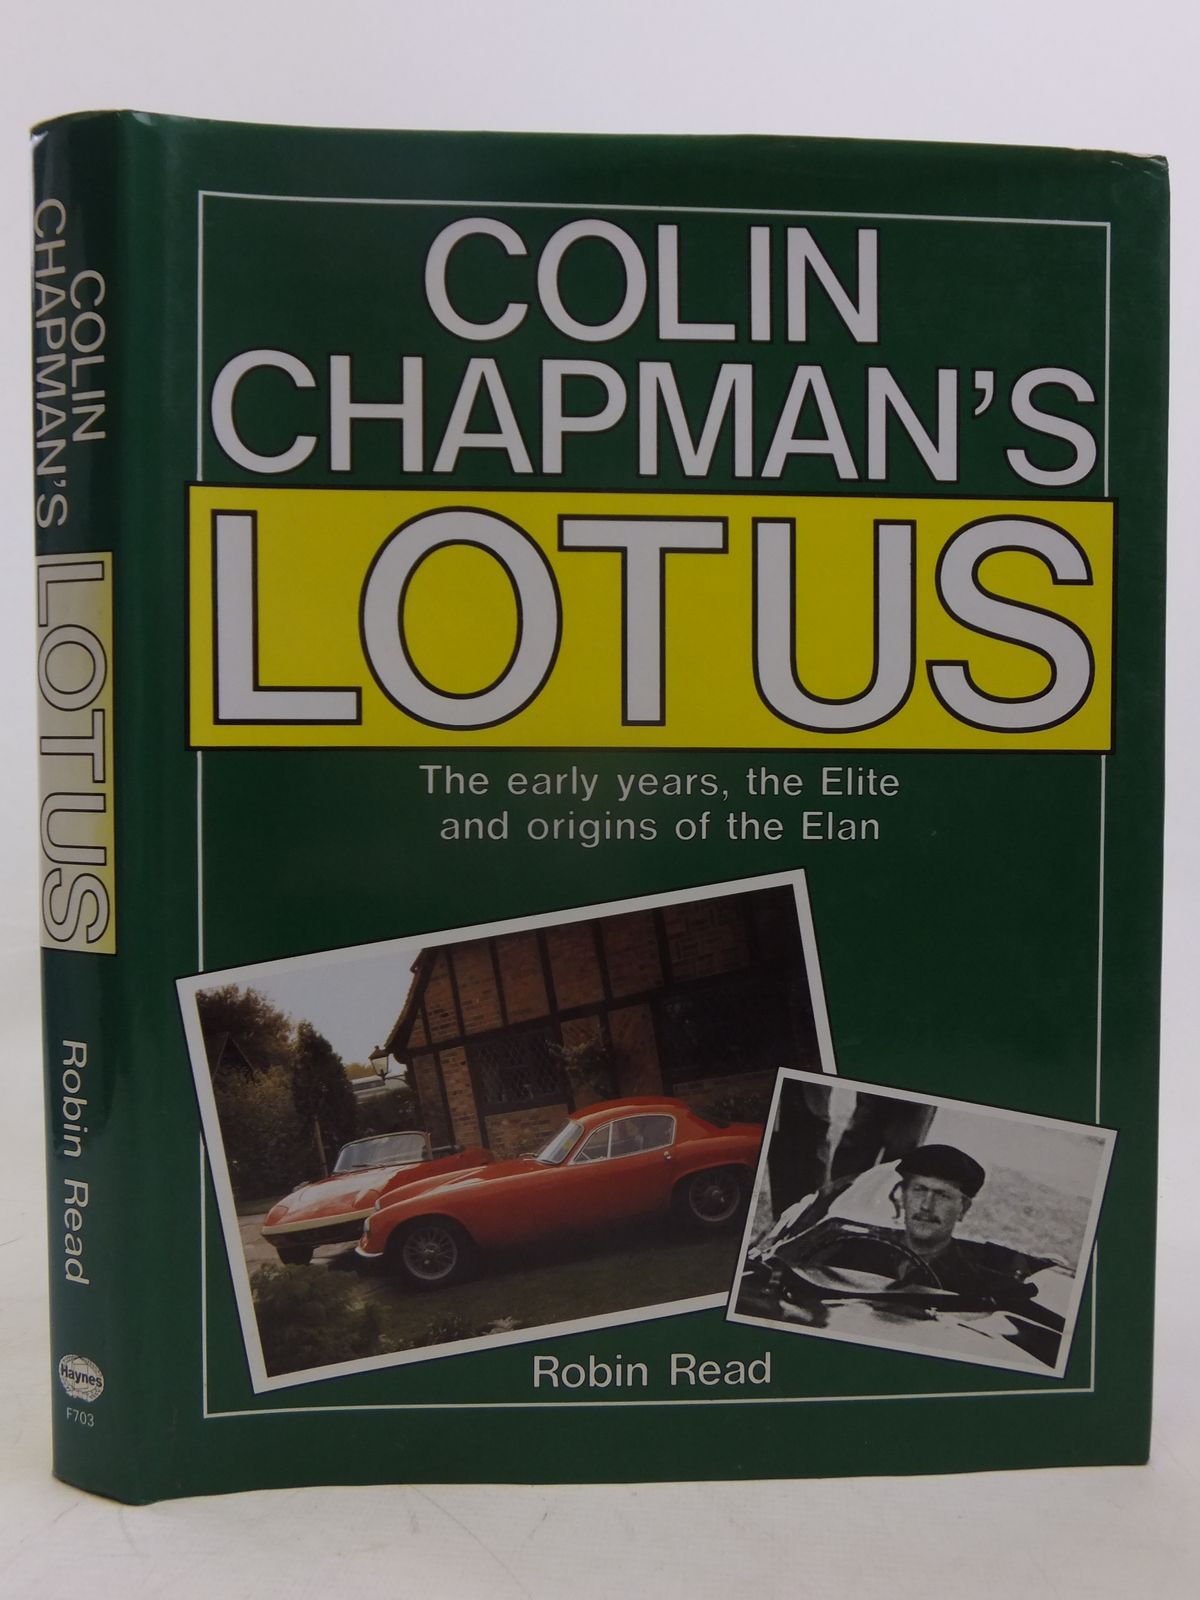 Photo of COLIN CHAPMAN'S LOTUS written by Read, Robin published by Foulis, Haynes (STOCK CODE: 2116419)  for sale by Stella & Rose's Books